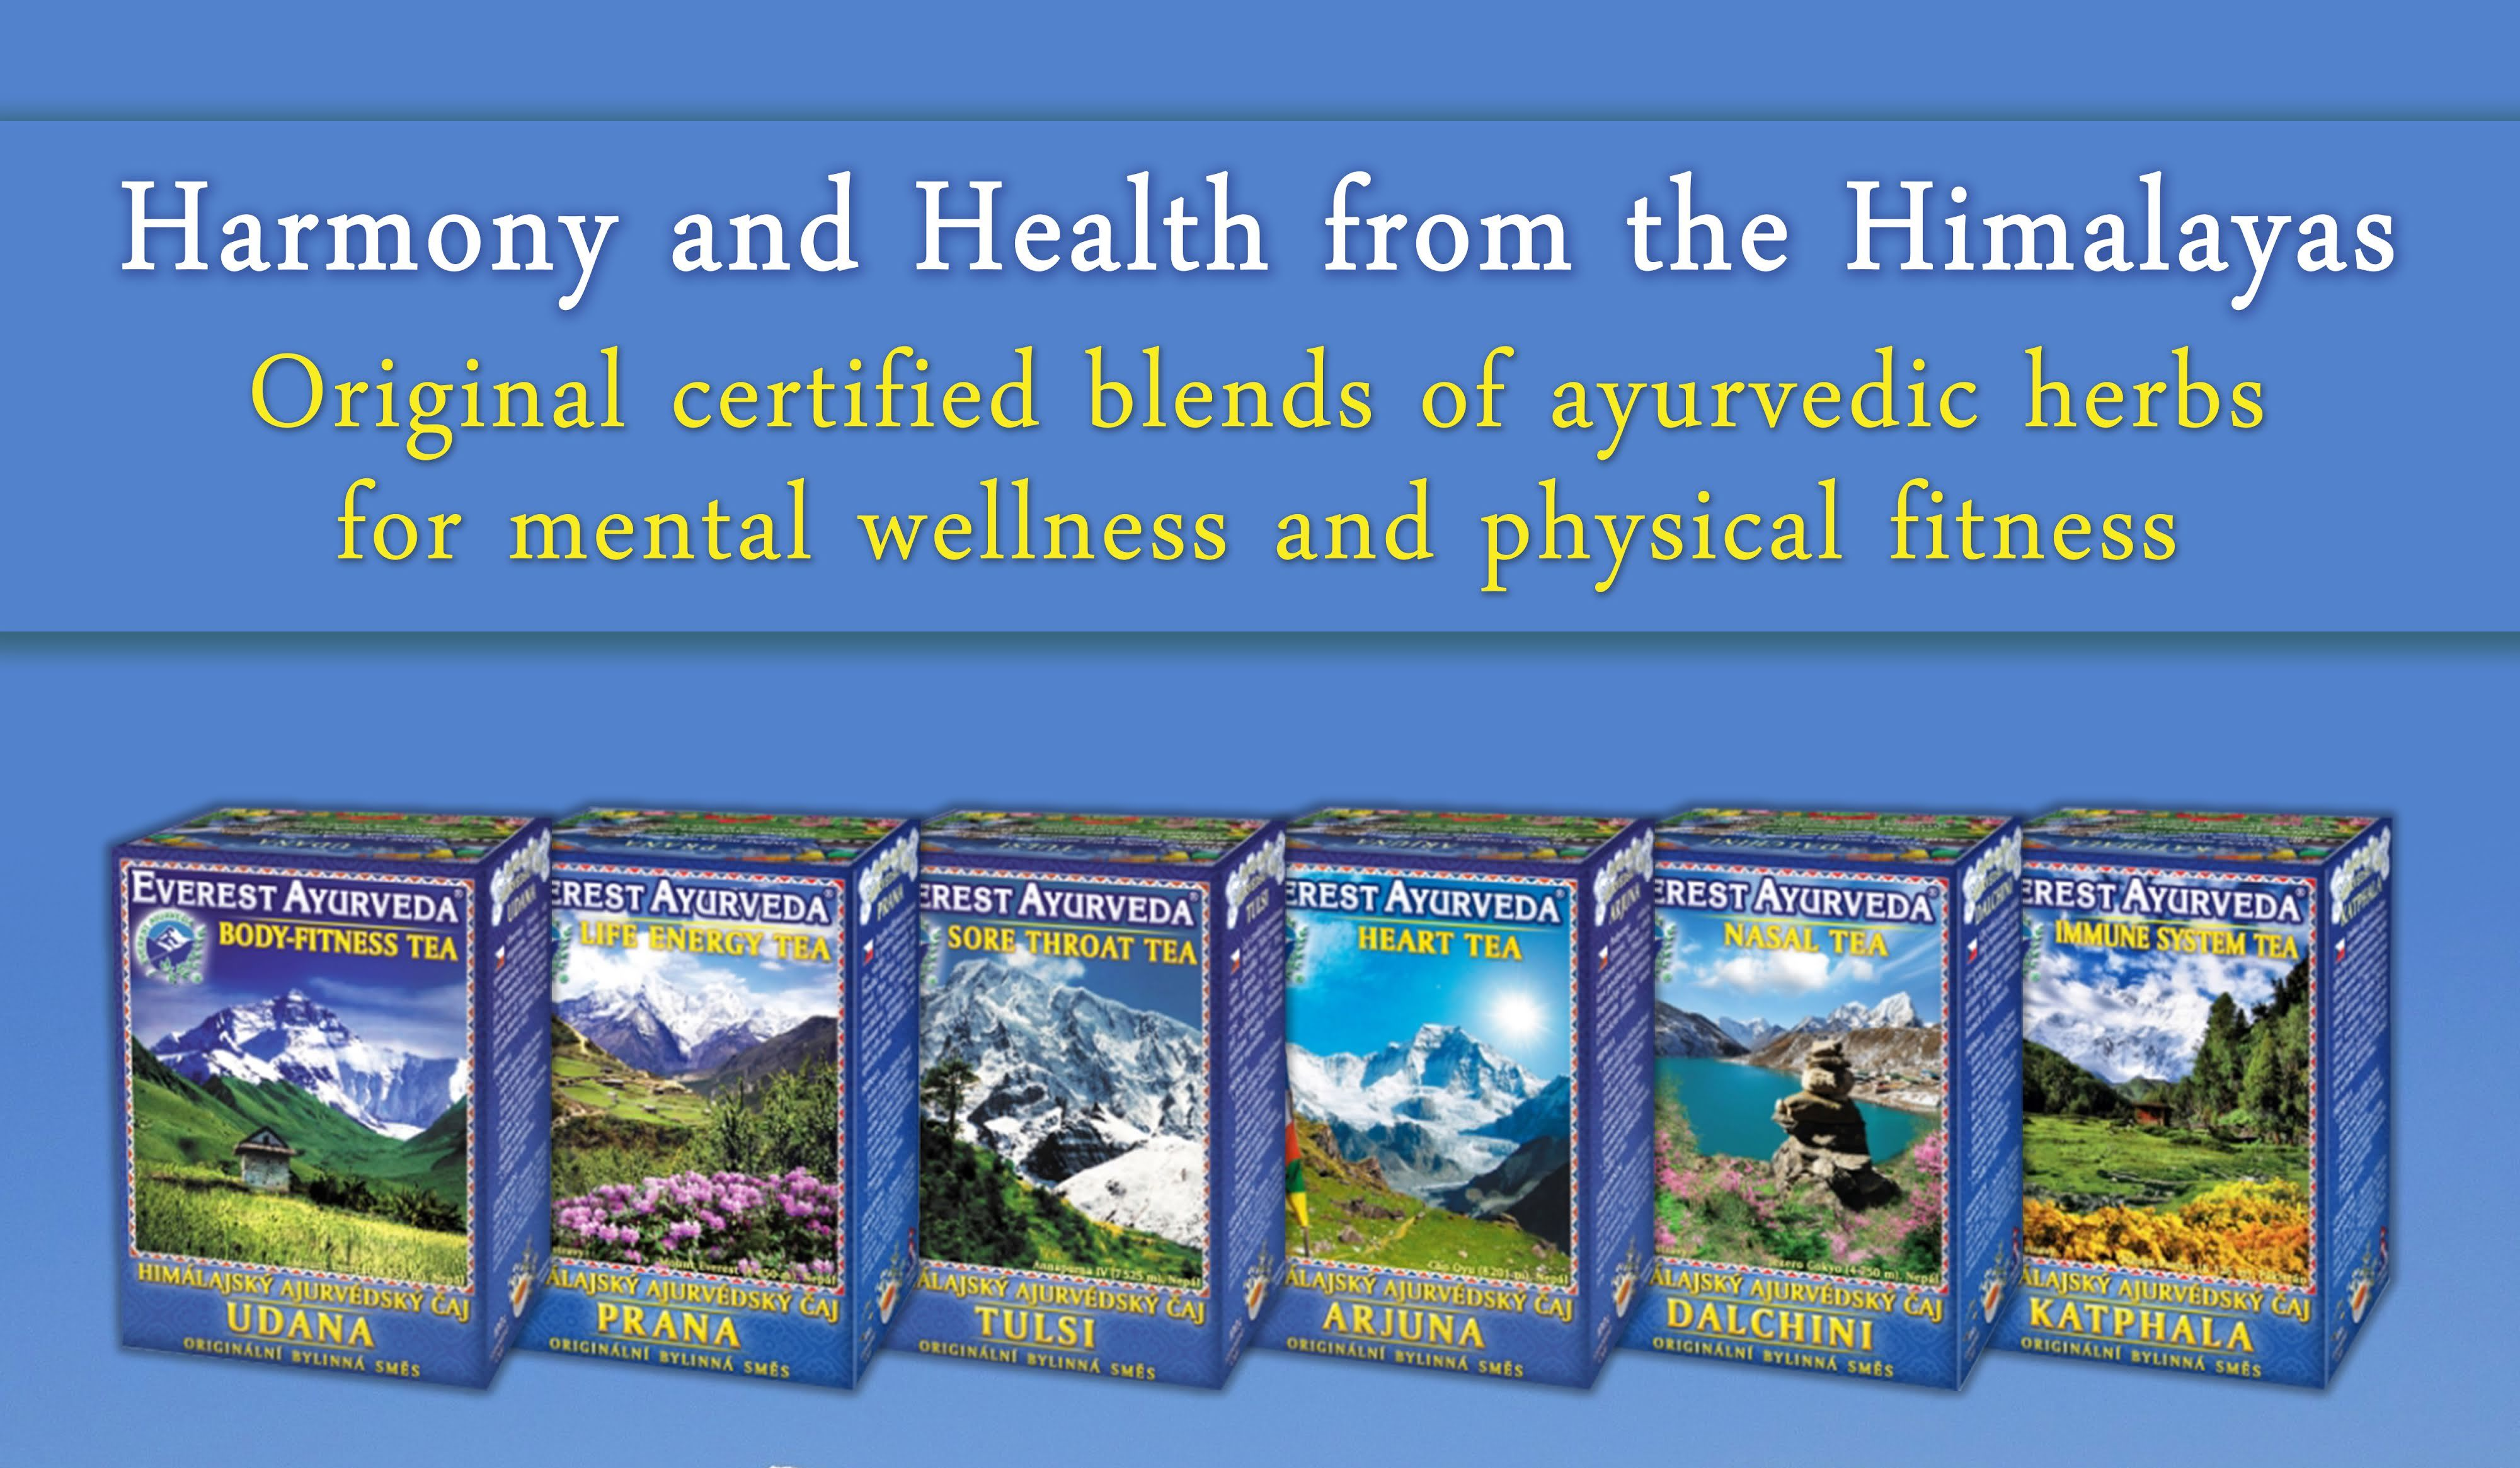 Ayurvedic herbal blends for harmony and health